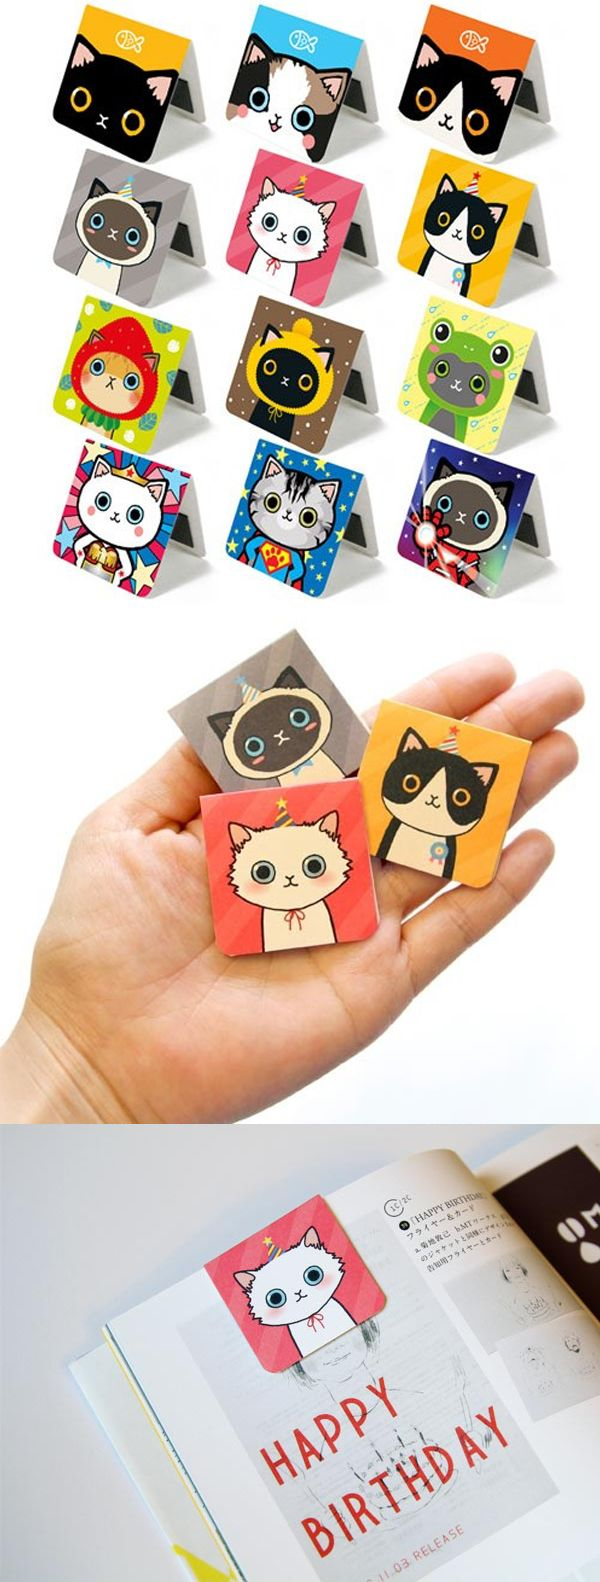 These kitties have assembled to save your book, pages, and your reading experience!